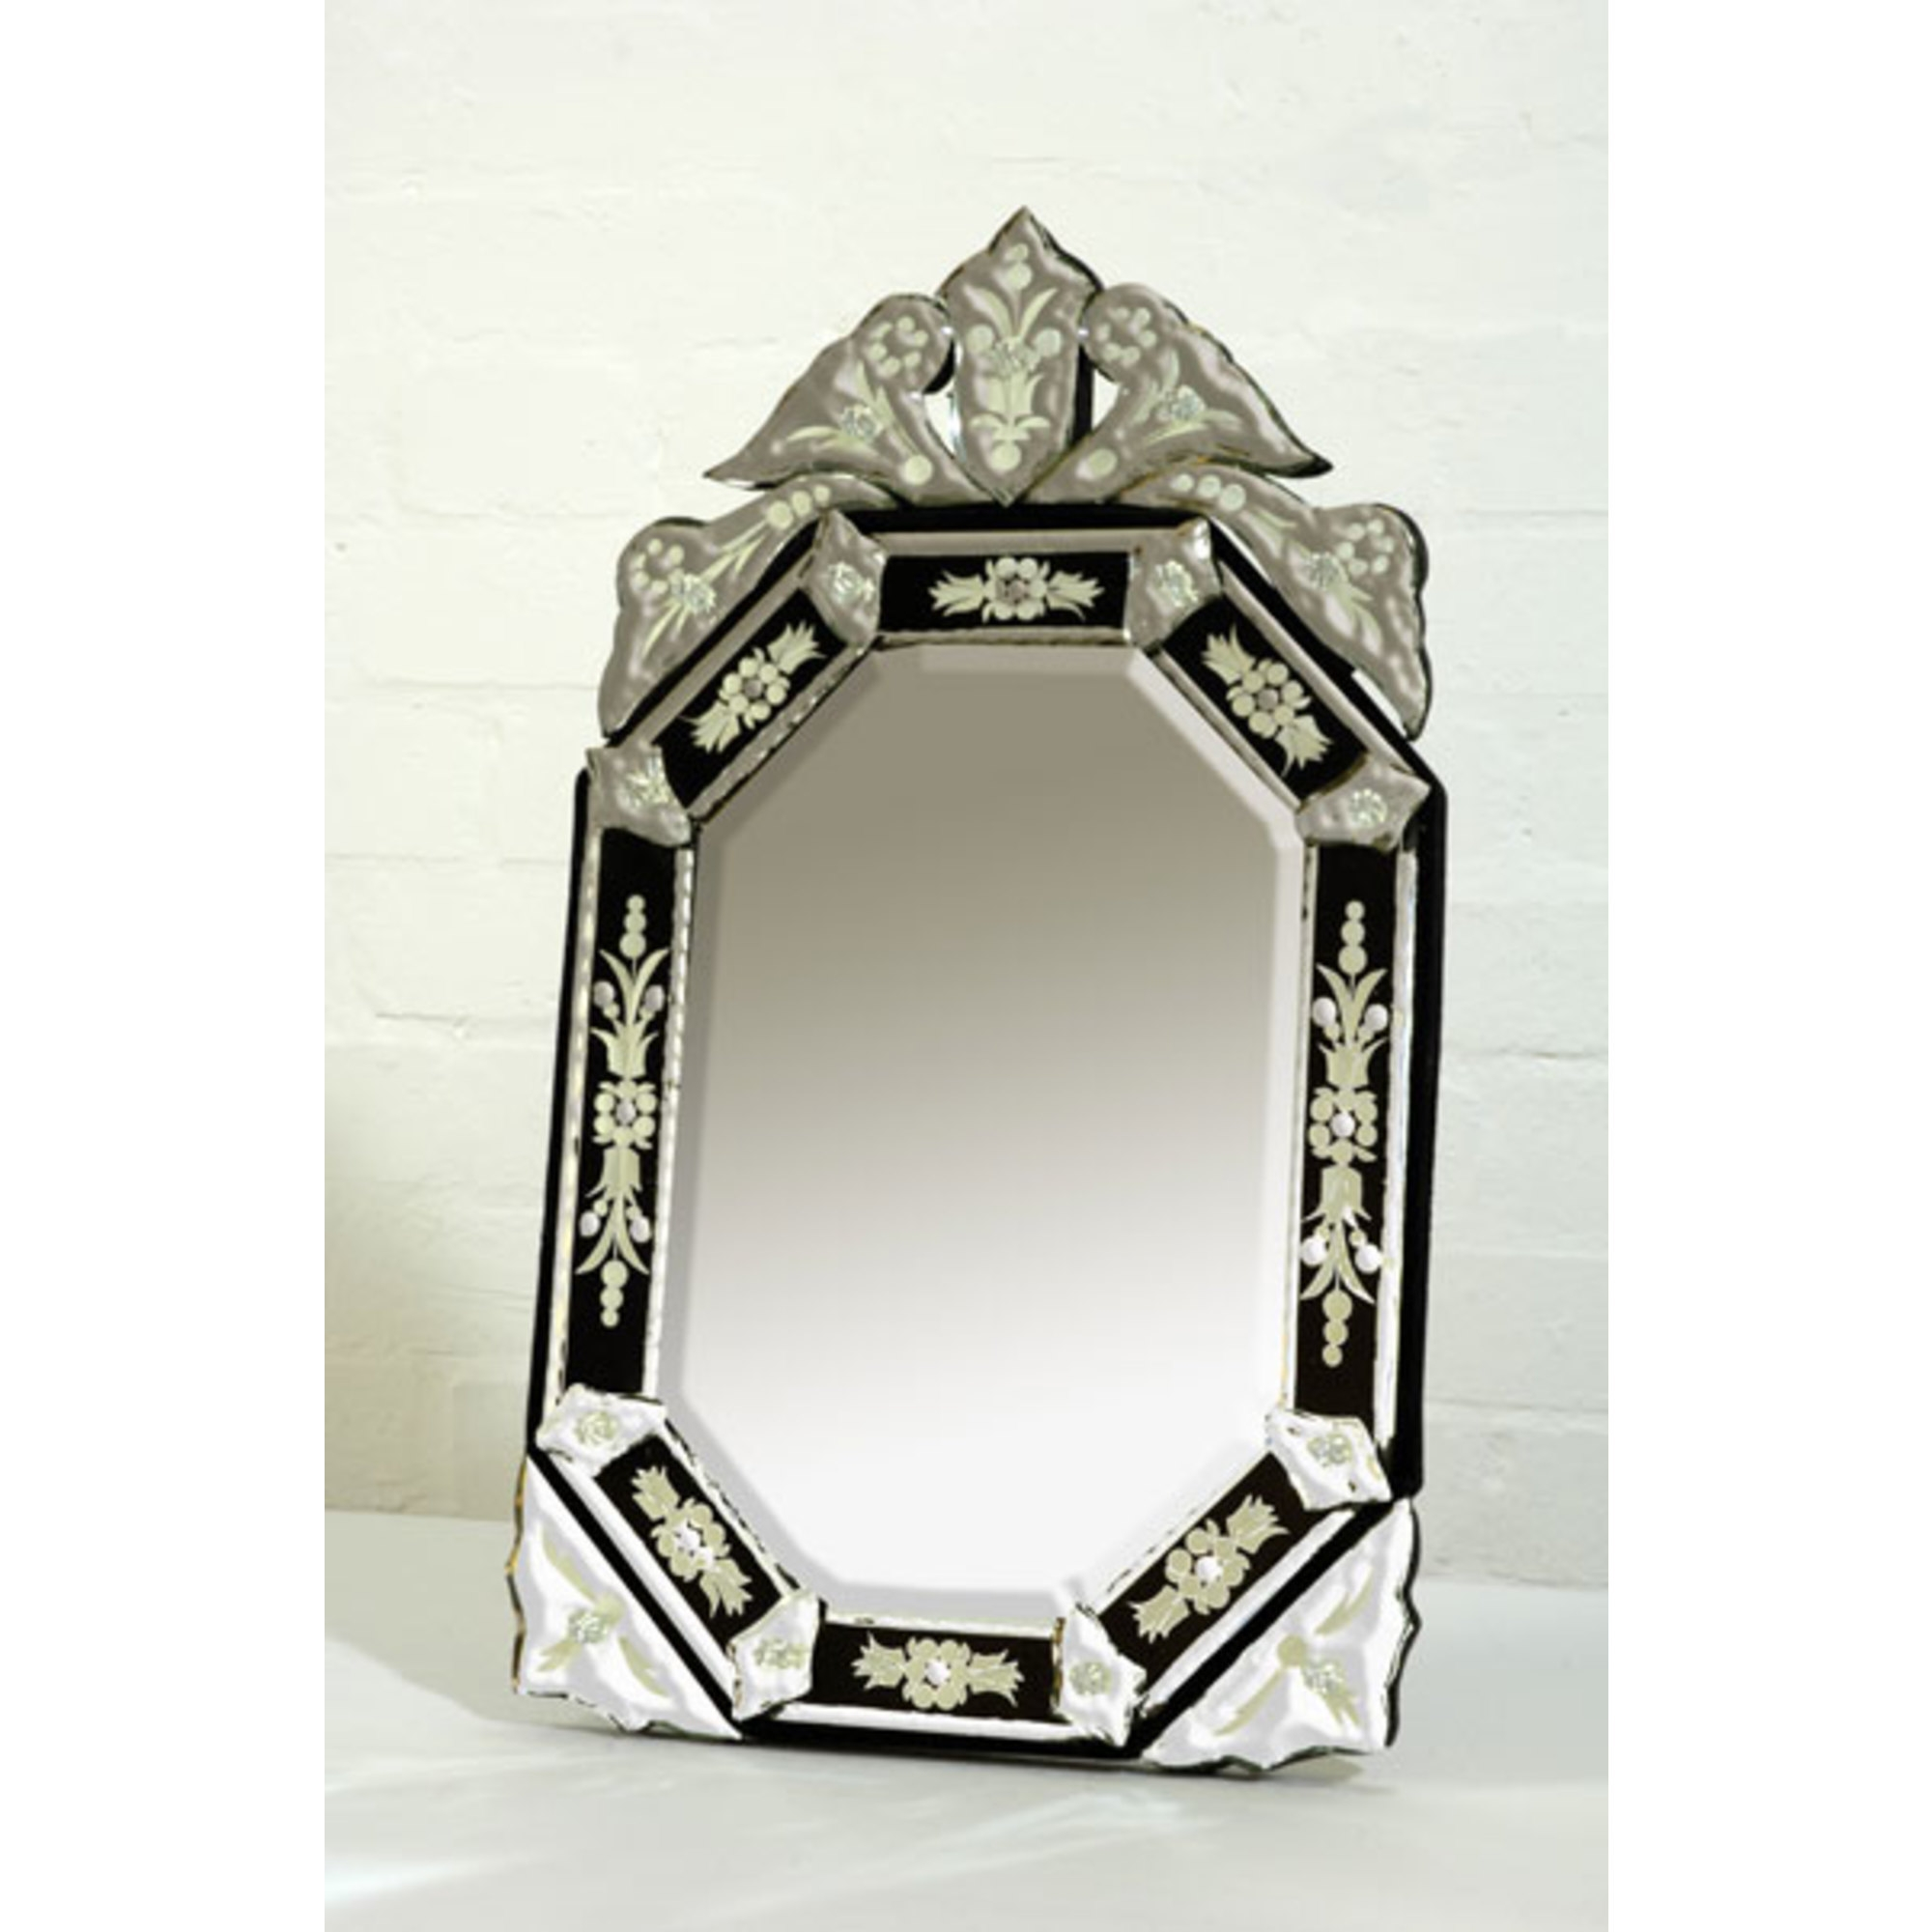 Venetian Hexagonal Etched Table Mirror - Black and Clear